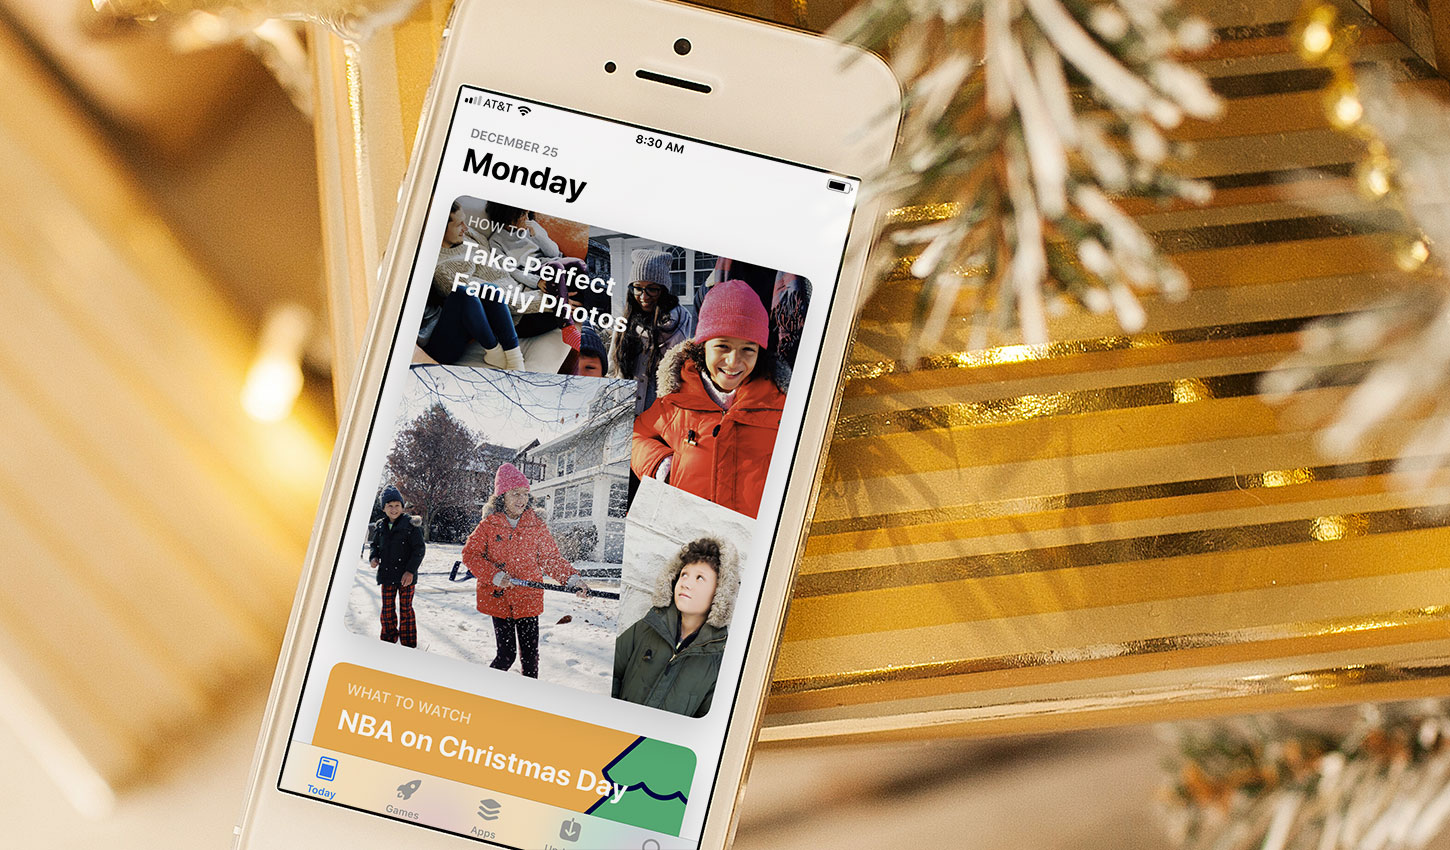 consumers spent nearly 200 million in apps on christmas up 12 over 2016